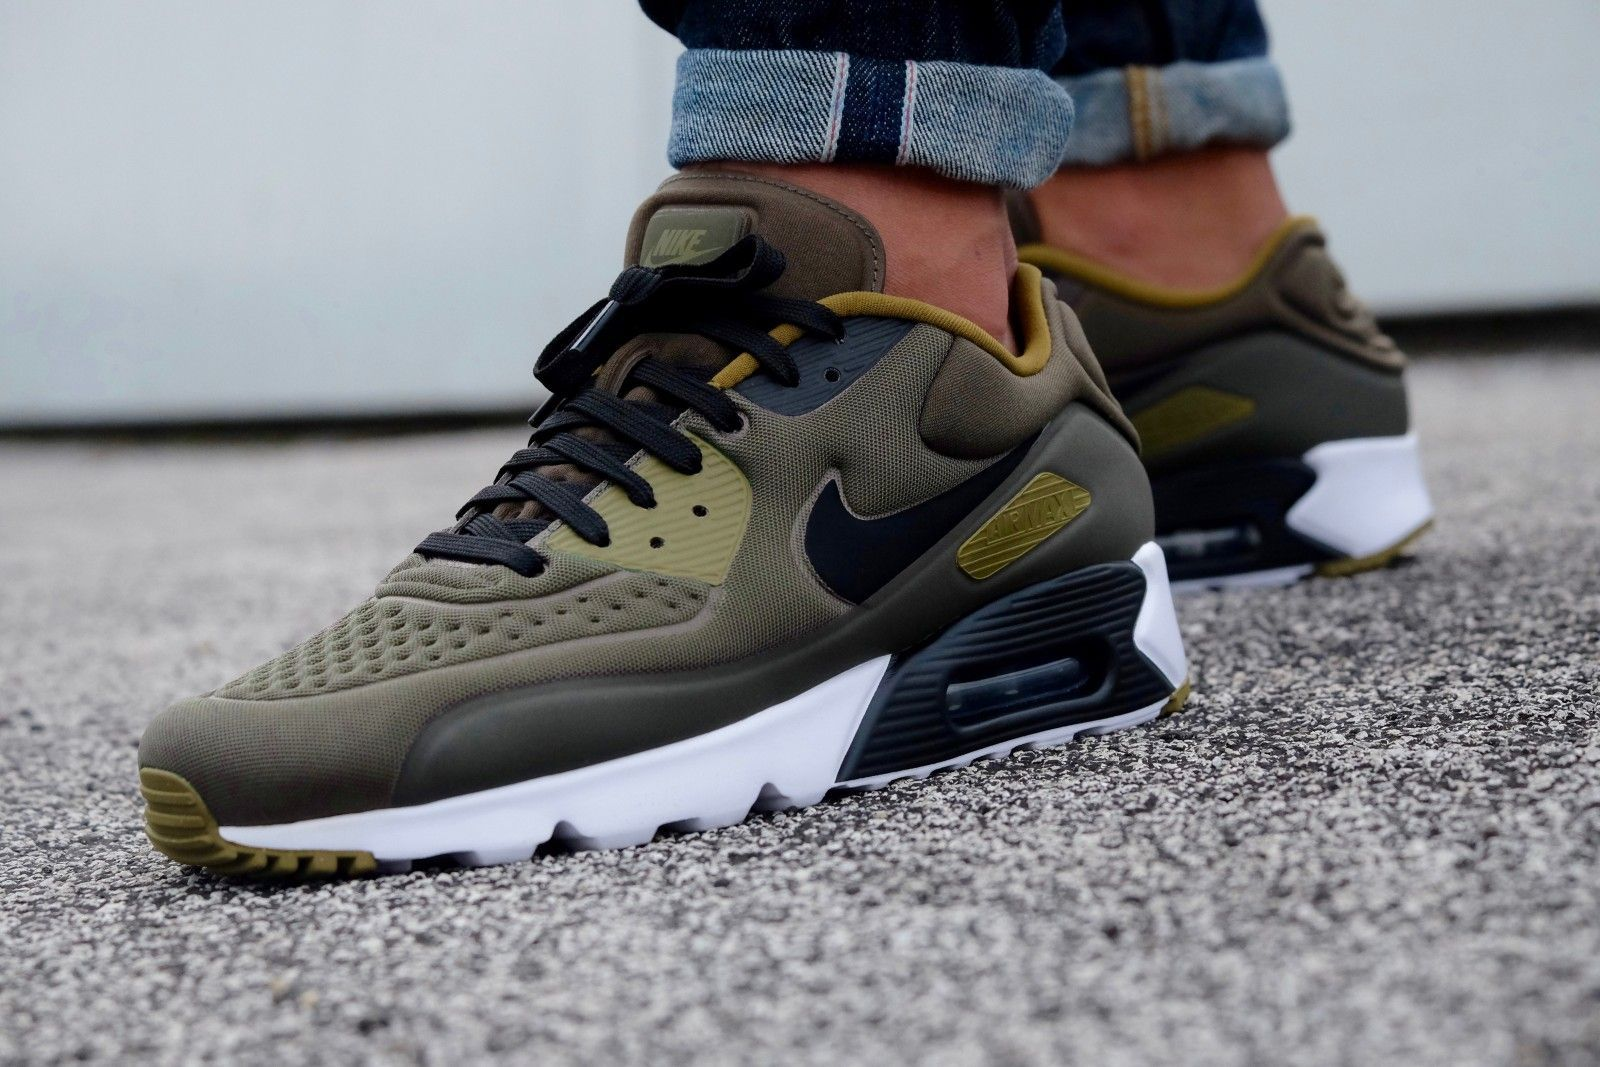 best sneakers 524c7 83ba1 Nike Air Max 90 Ultra Special Edition Cargo Khaki Black-Olive Flak-White -  845039-300